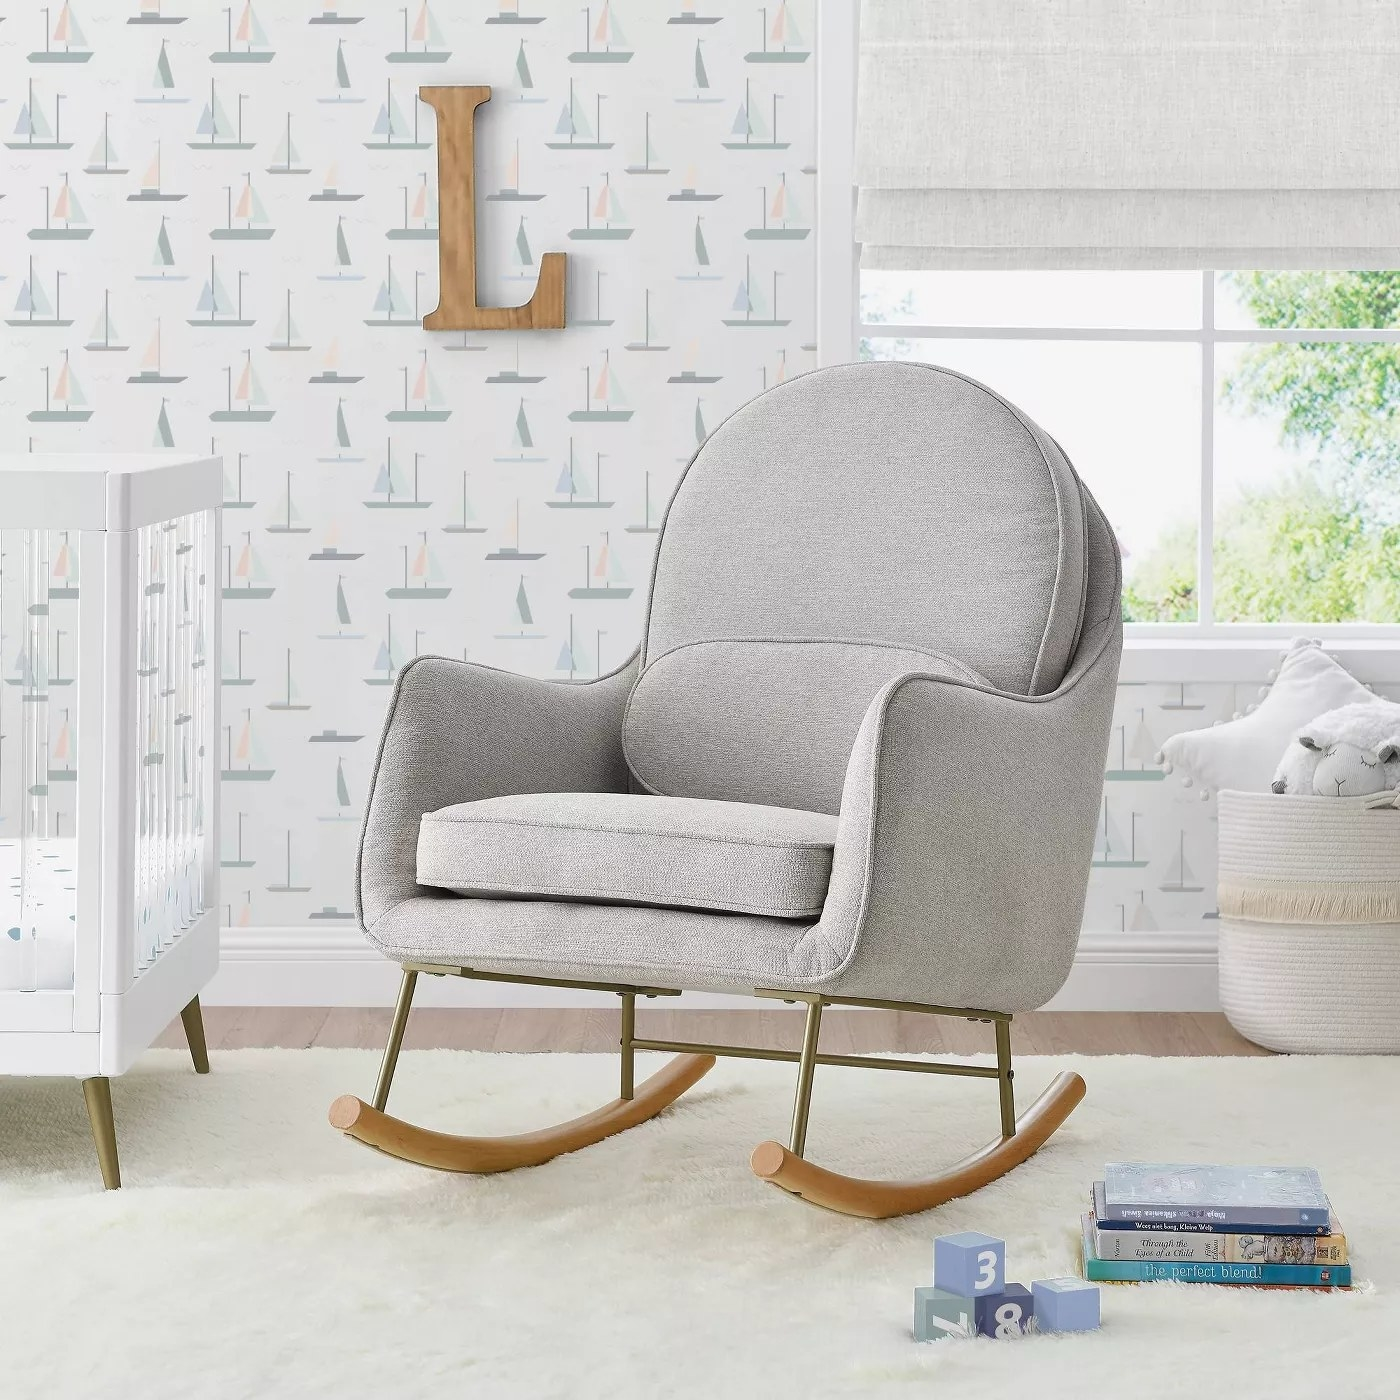 The rocking chair with a matching lumbar pillow in a nursery